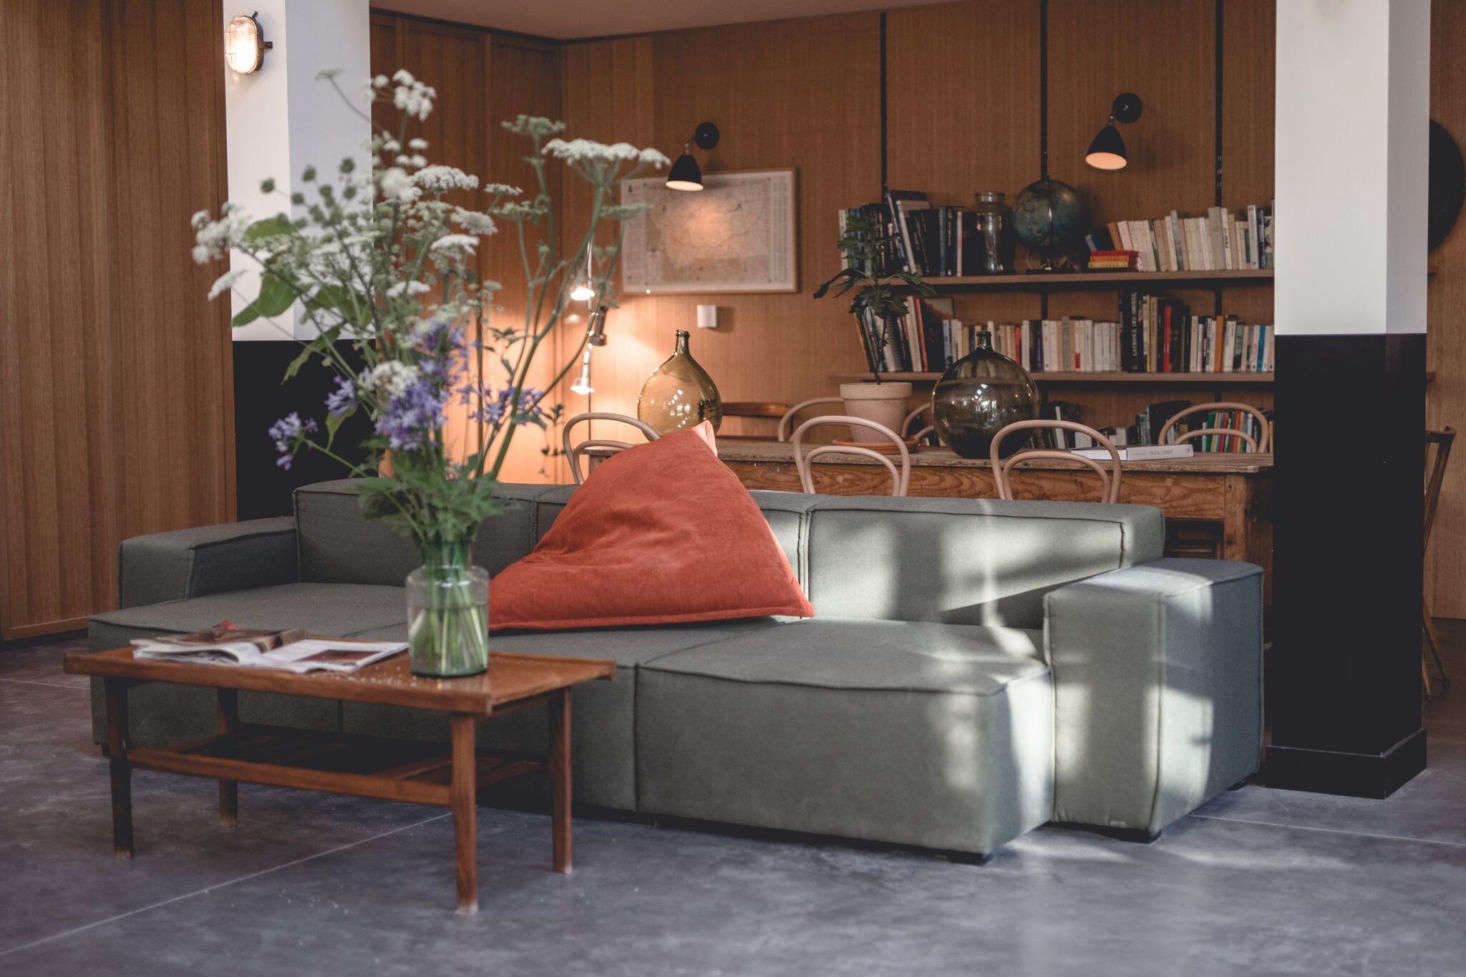 An extra-wide sofa for lounging in the library area.